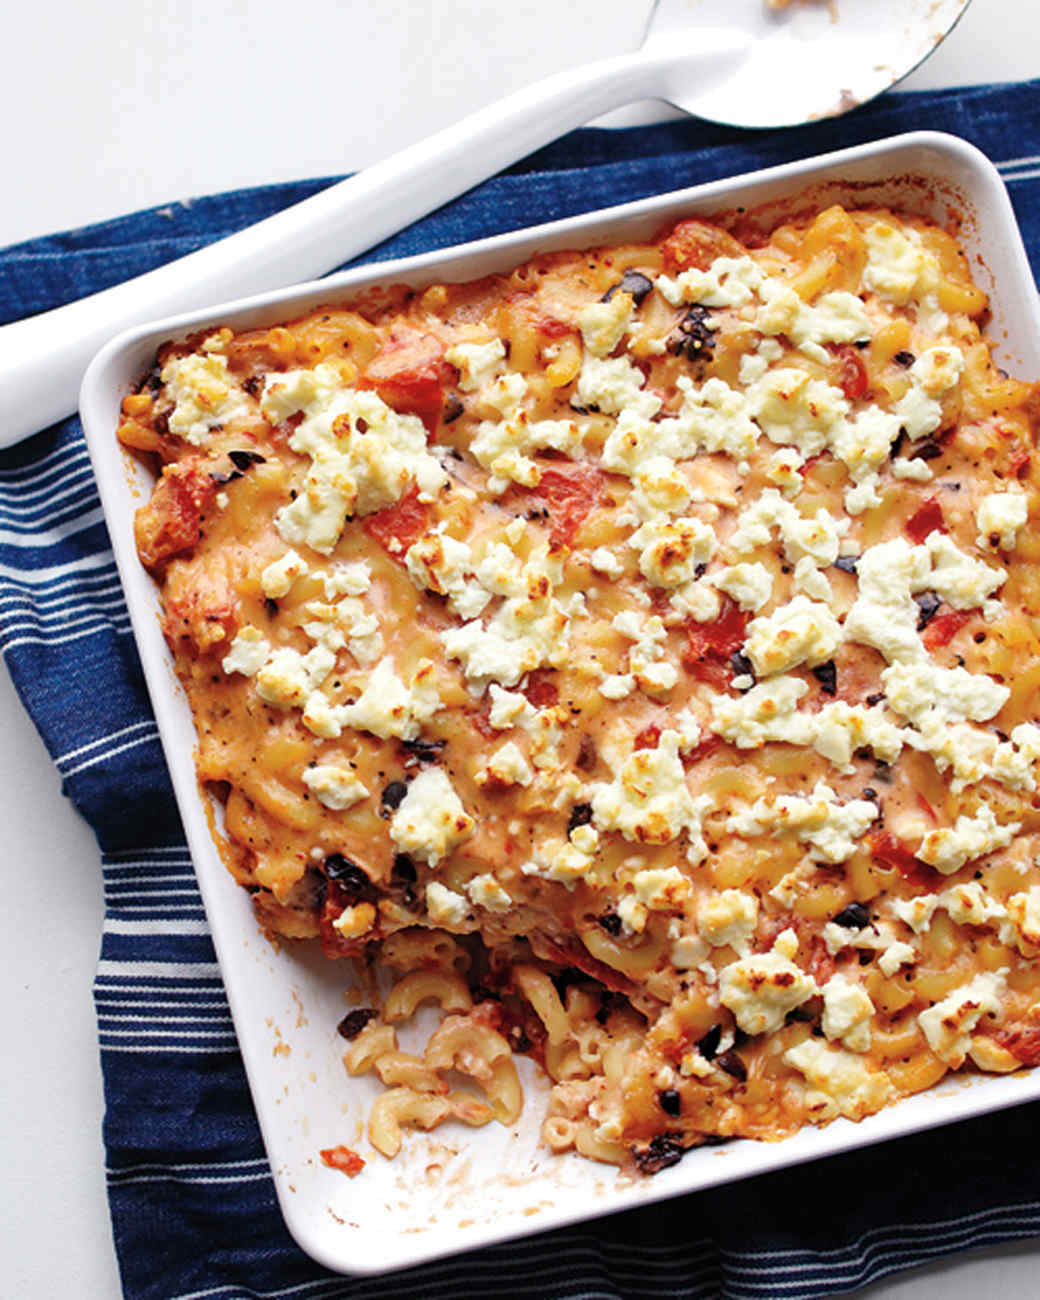 med105502_0410_feta_mac_cheese.jpg